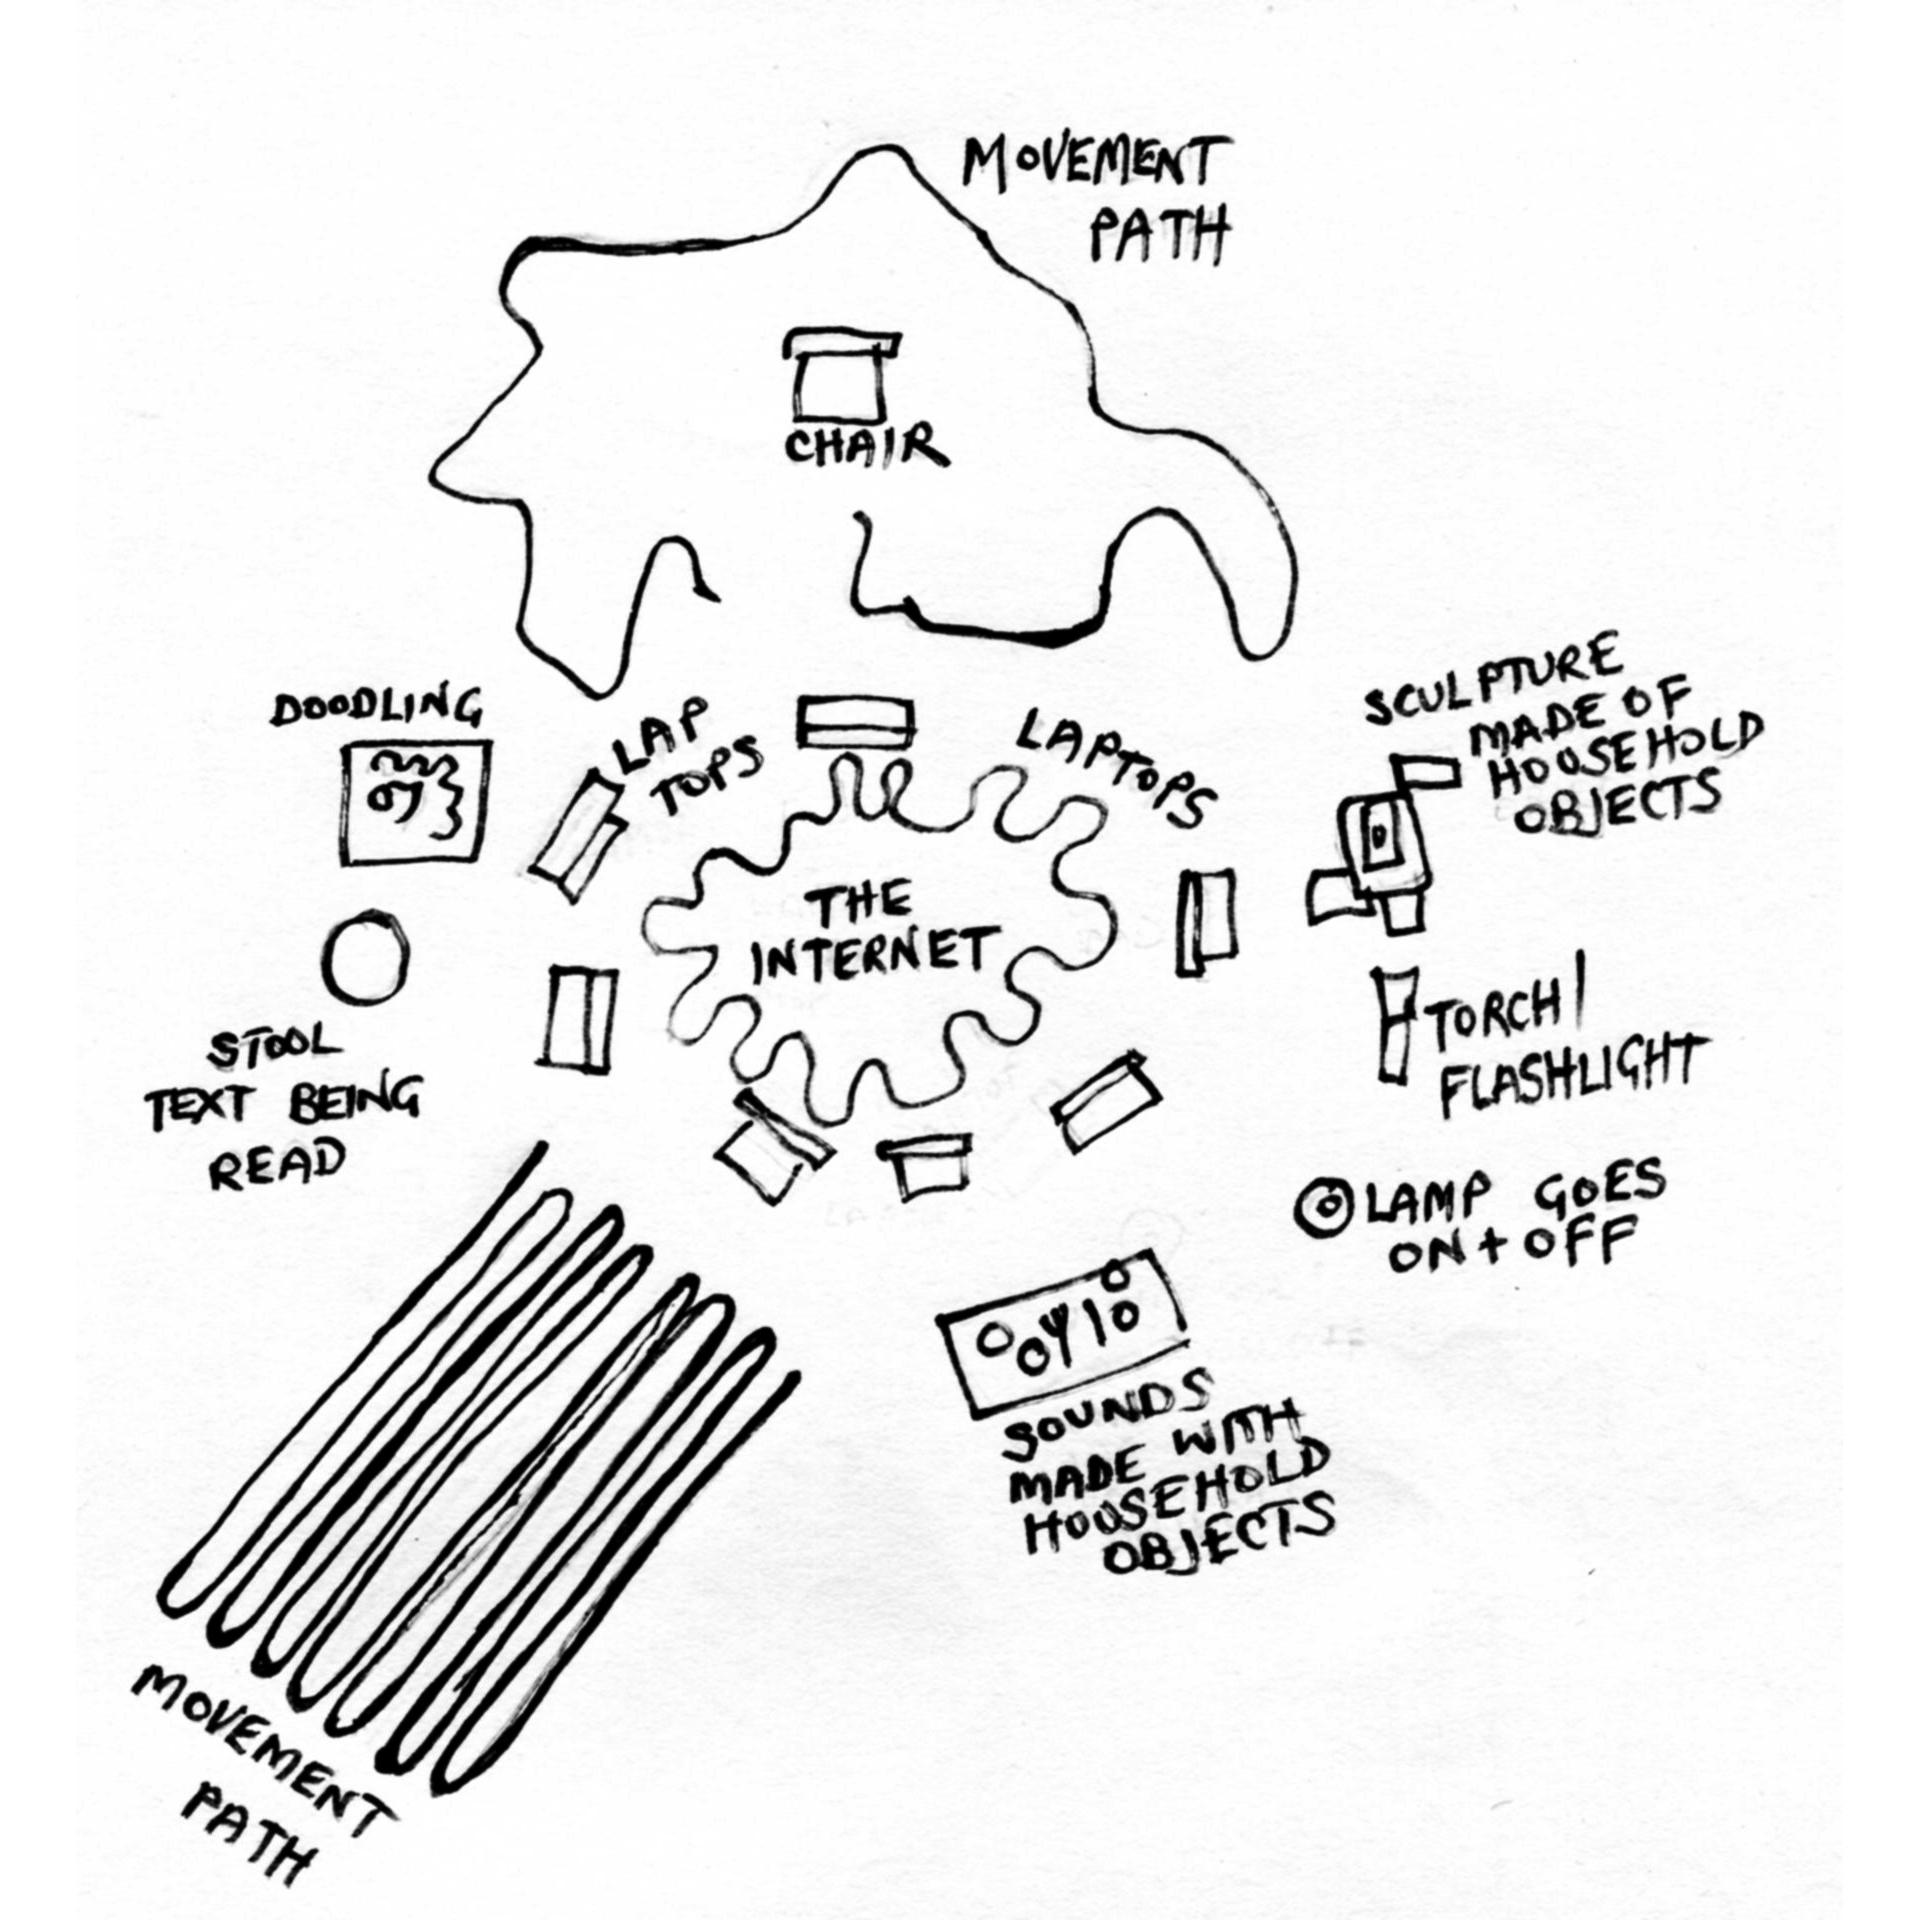 A reimagining of MC Richard's diagram of the First Happening, for our 21st Century Light, Sound, Movement Workshop.